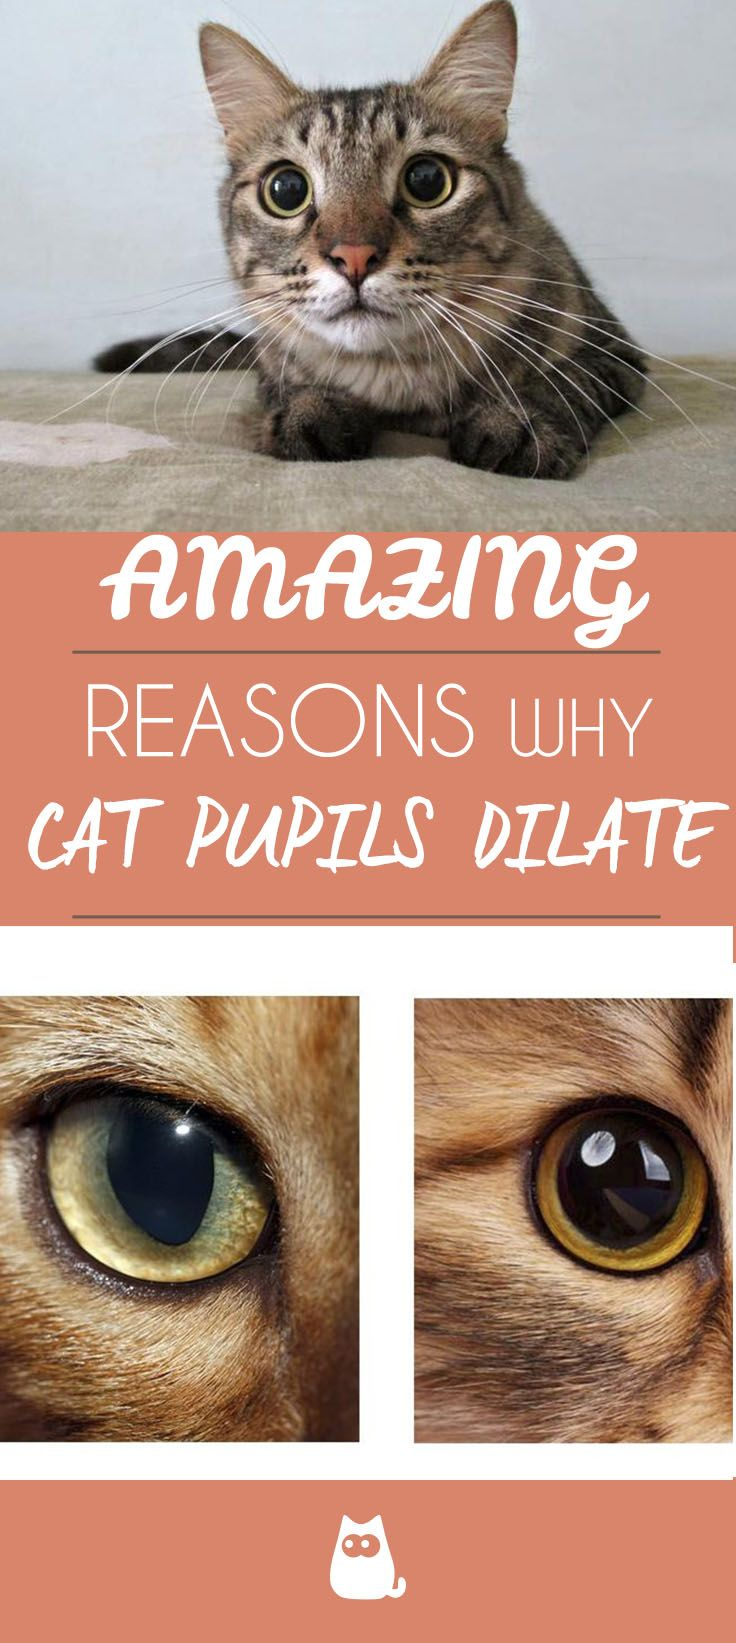 All Reasons Why Cat Pupils Dilate Cat Pupils Cute Funny Animals Cat Eye Colors